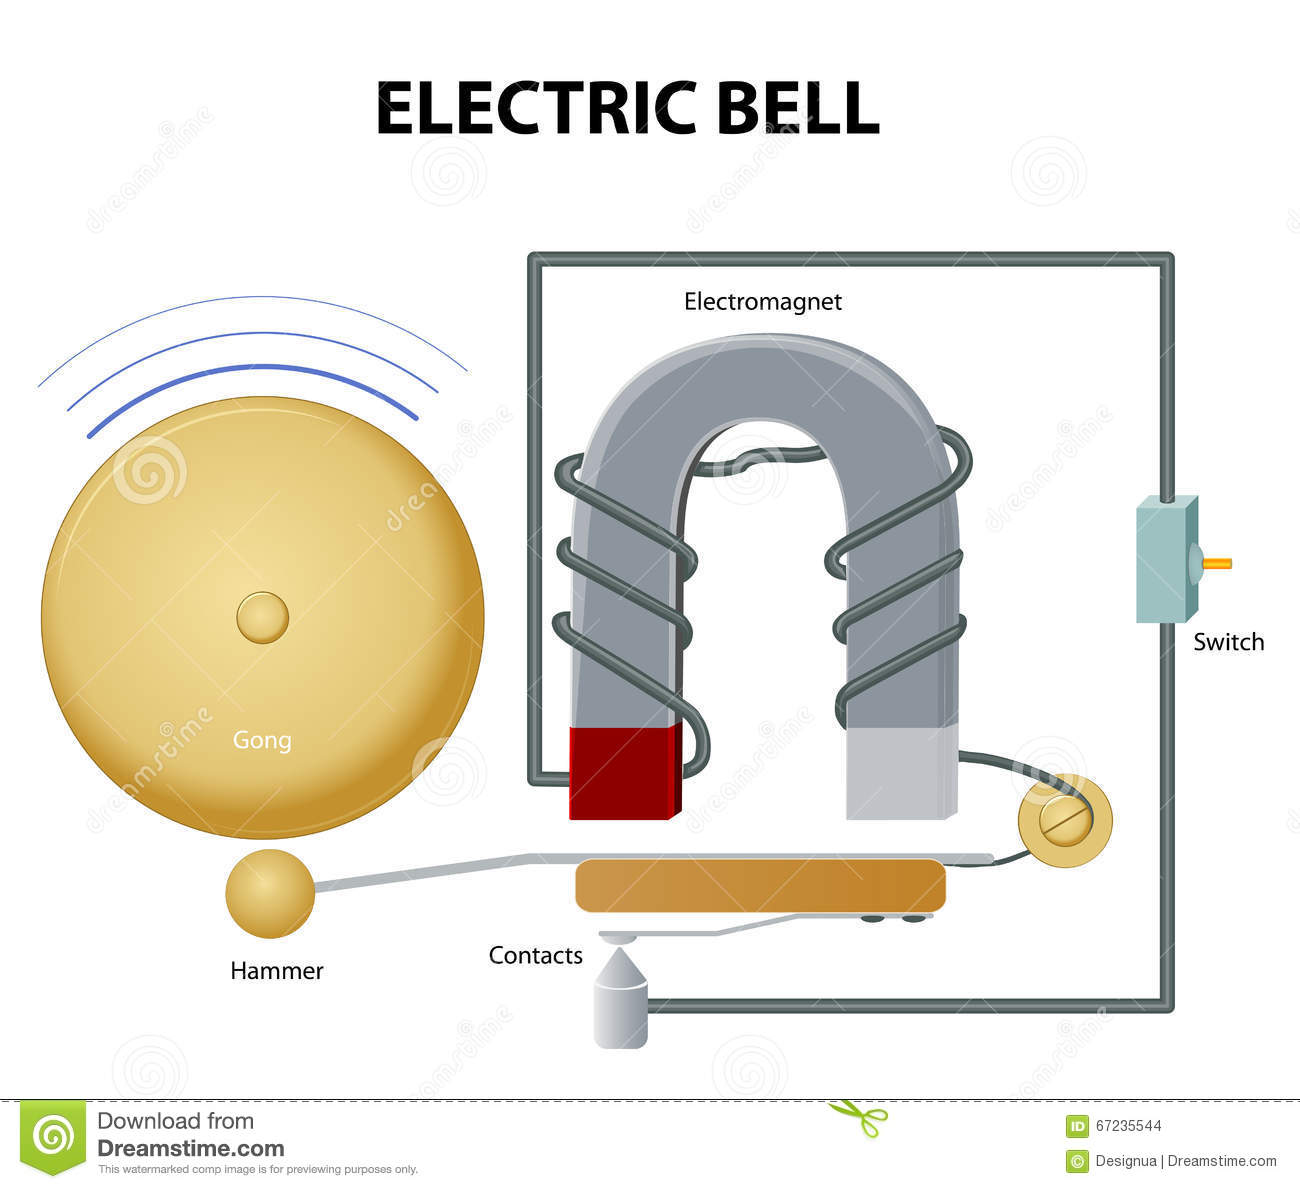 Stock Illustration Electric Bell How Works Electromag  Pulls Clapper Hammer Strikes Gong Its Rest Position Clapper Image67235544 on simple burglar alarm circuit diagram